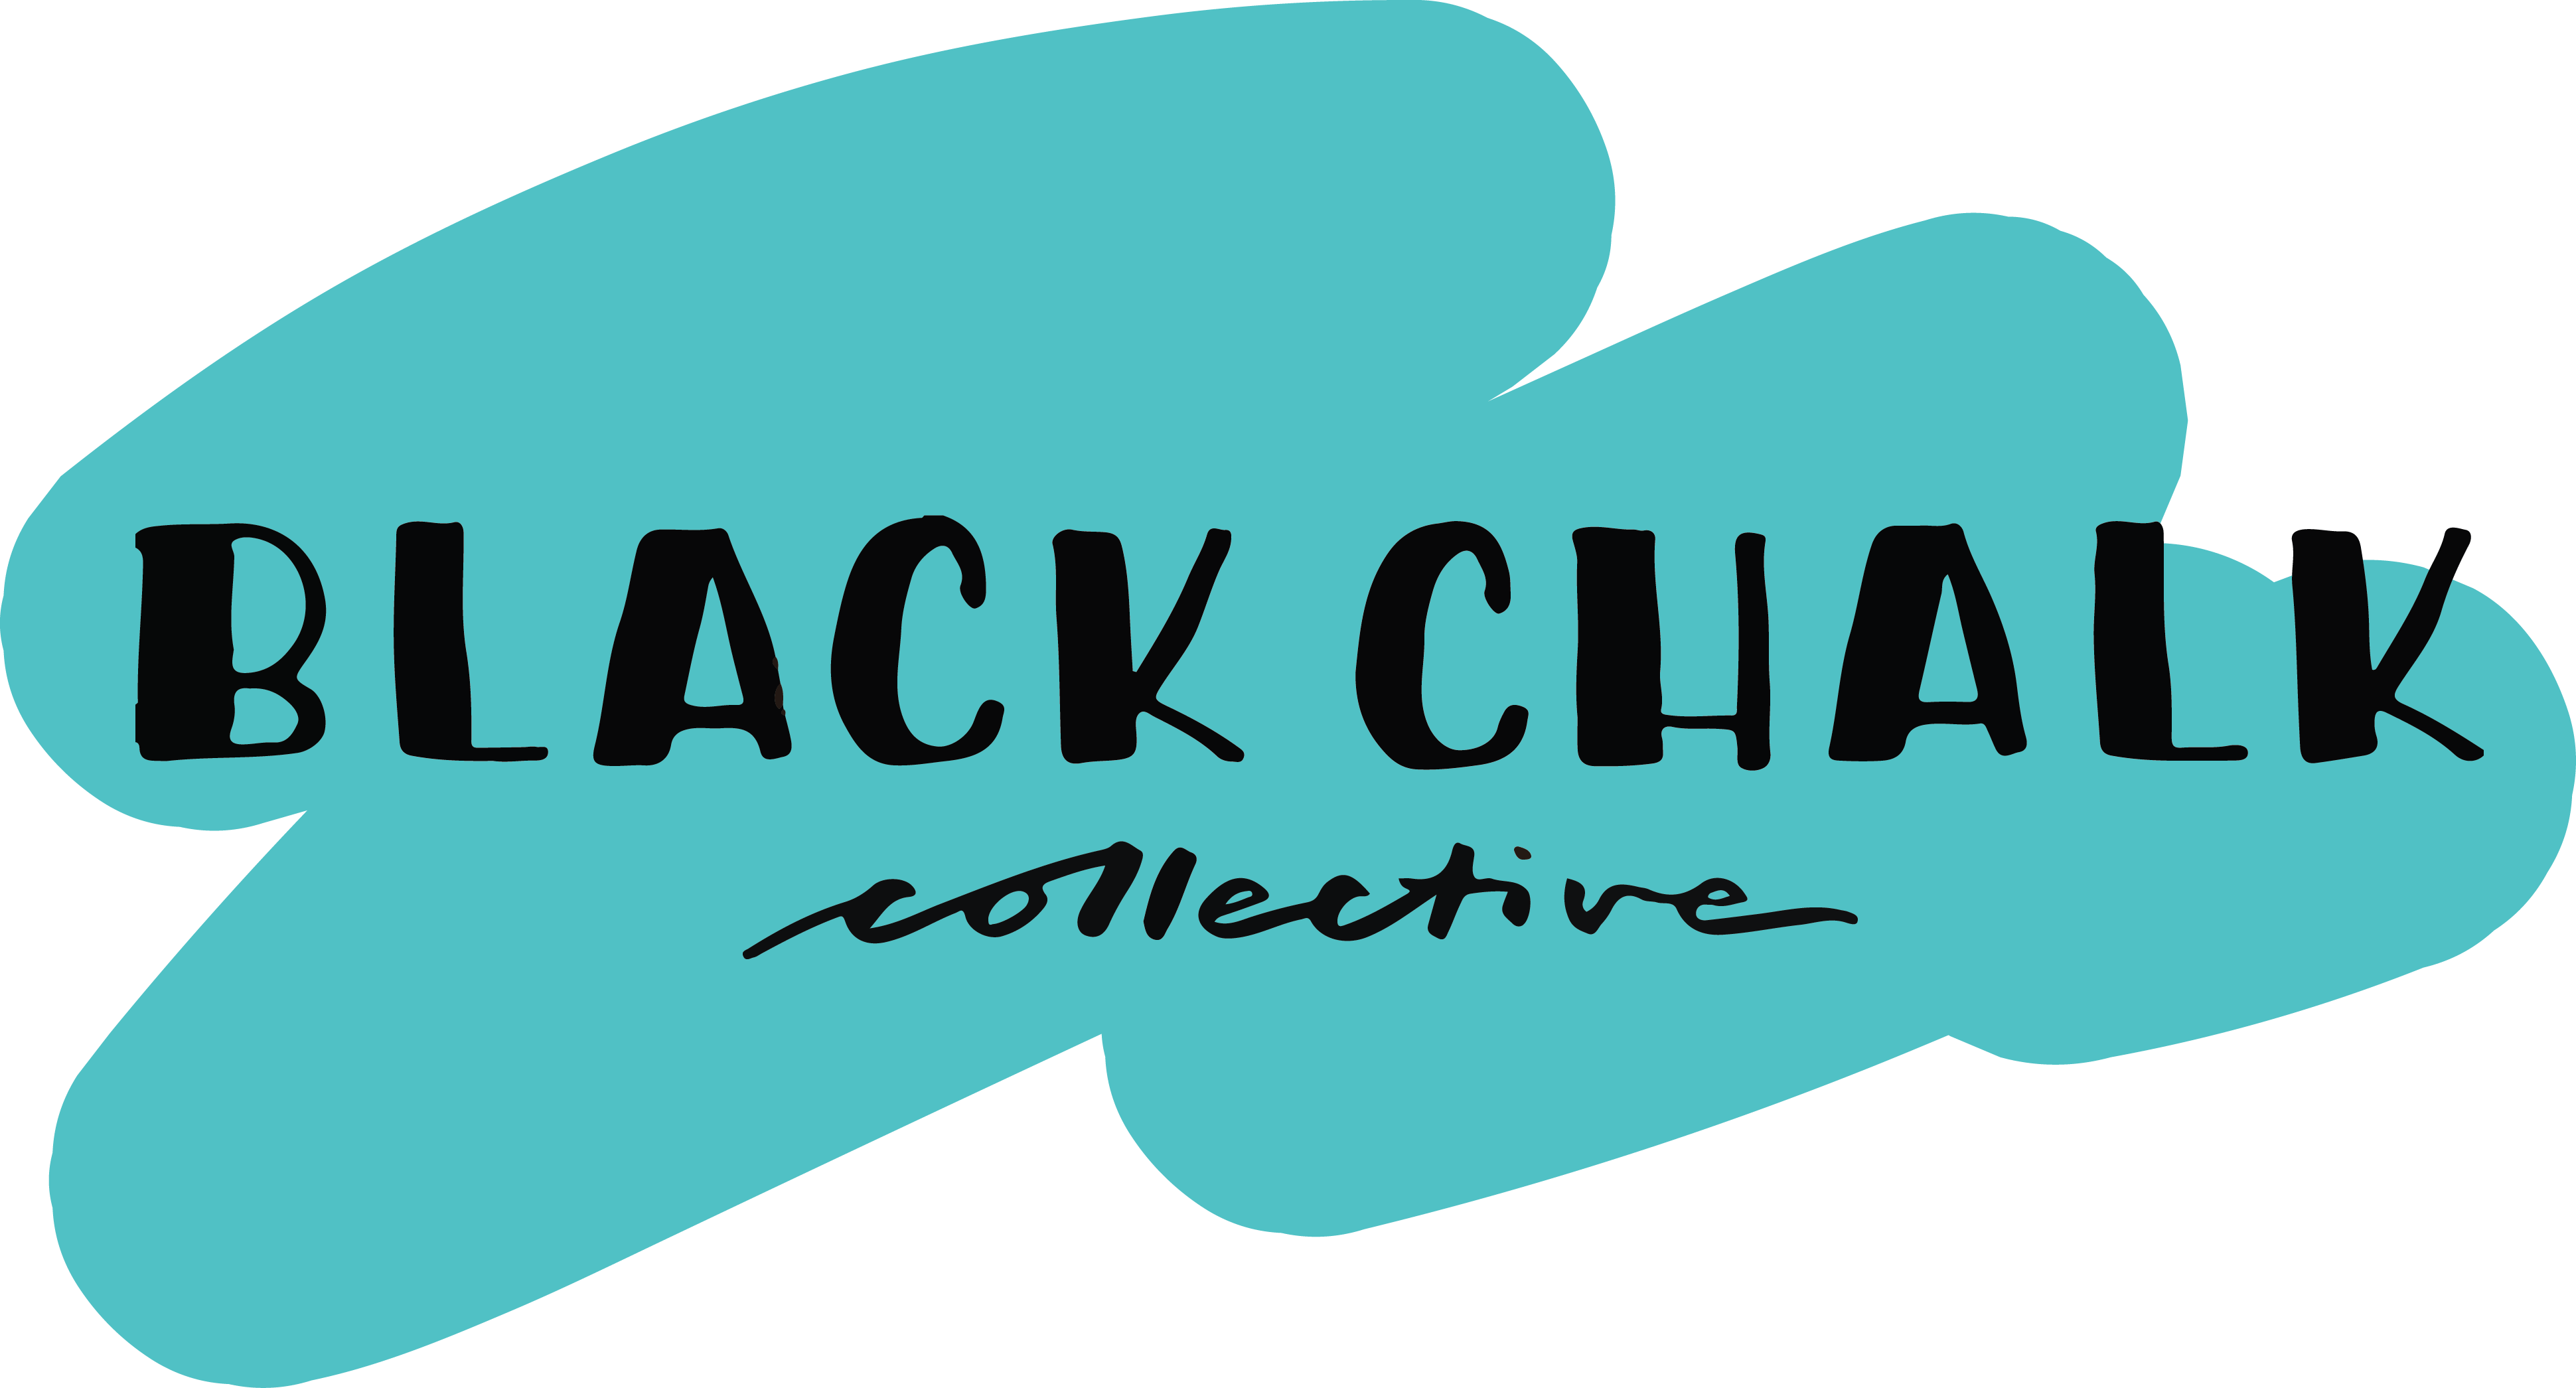 Black Chalk Collective | Melbourne Calligraphy, Brush Lettering and Creative Services, Australia